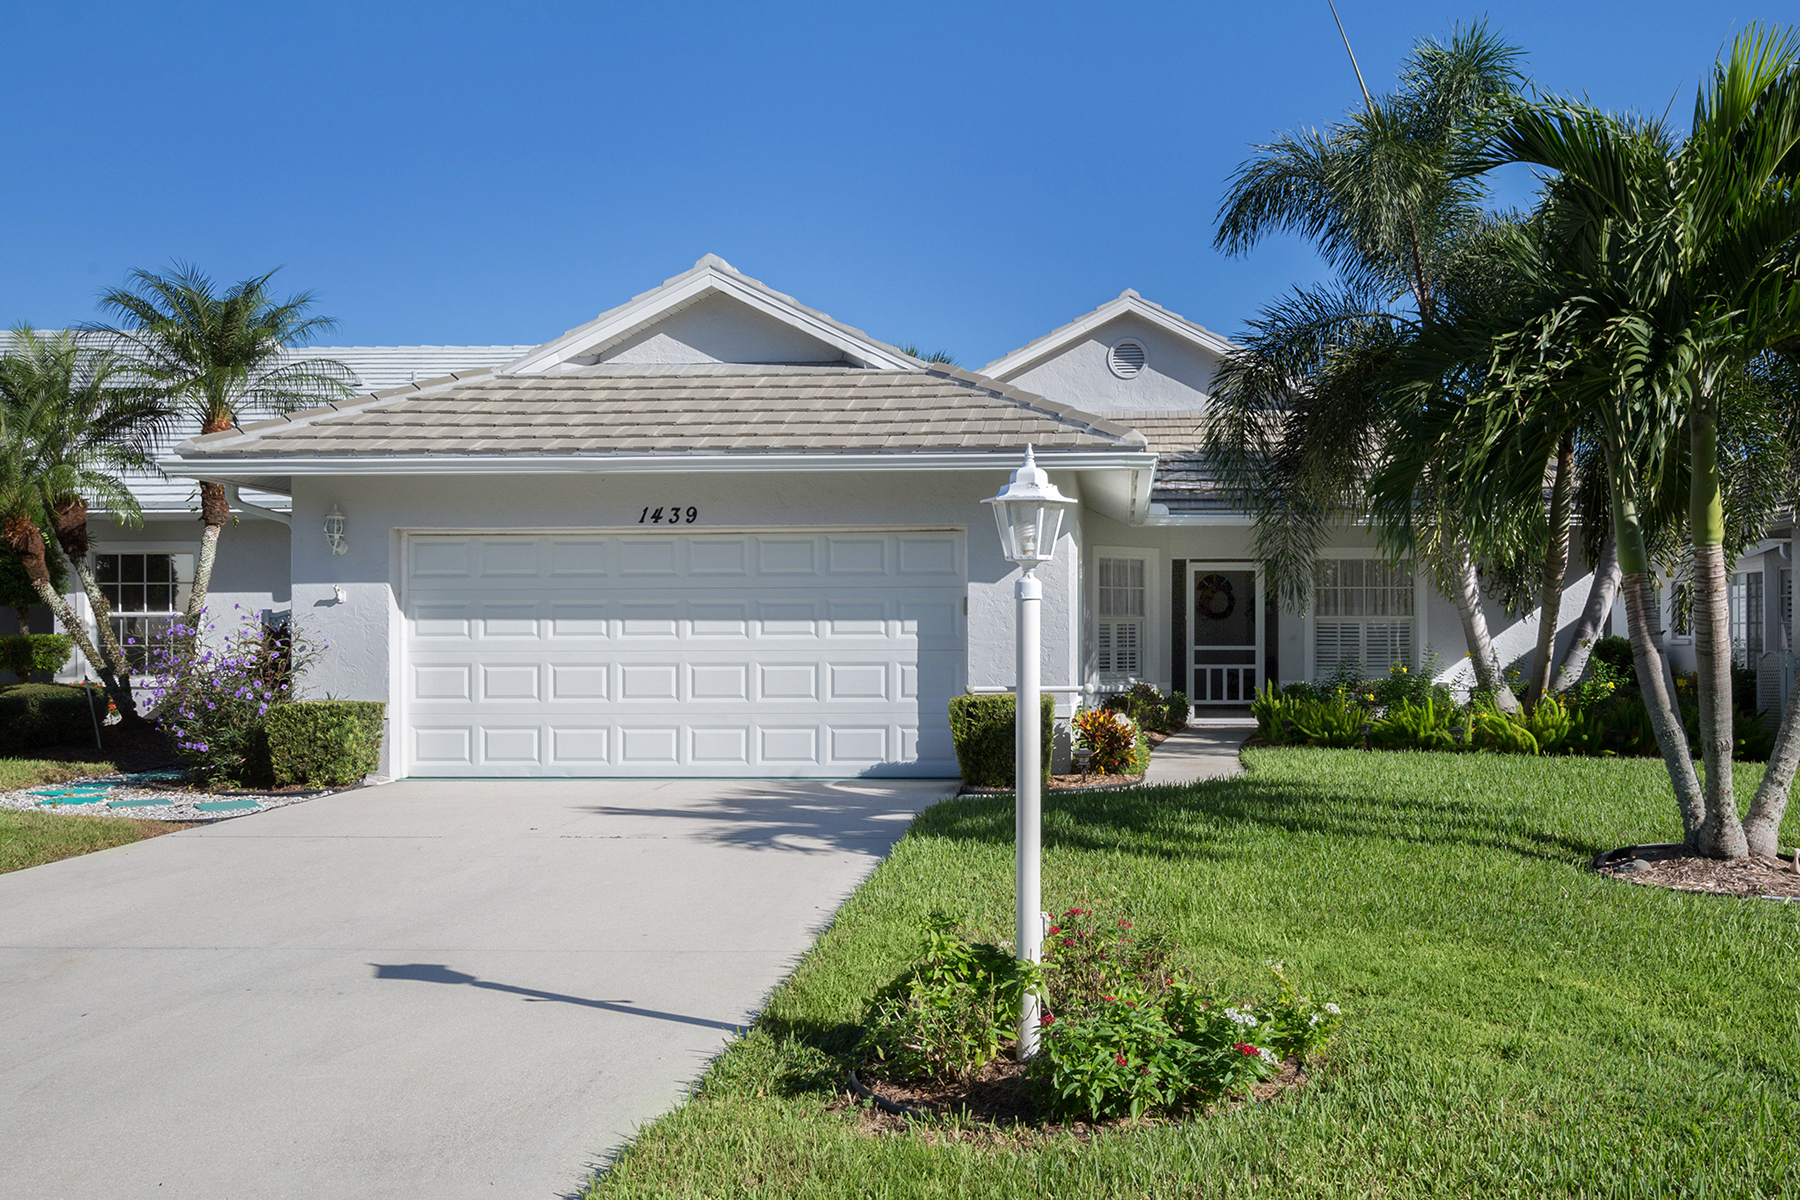 Single Family Home for Sale at WATERFORD 1439 Colony Pl, Venice, Florida 34292 United States